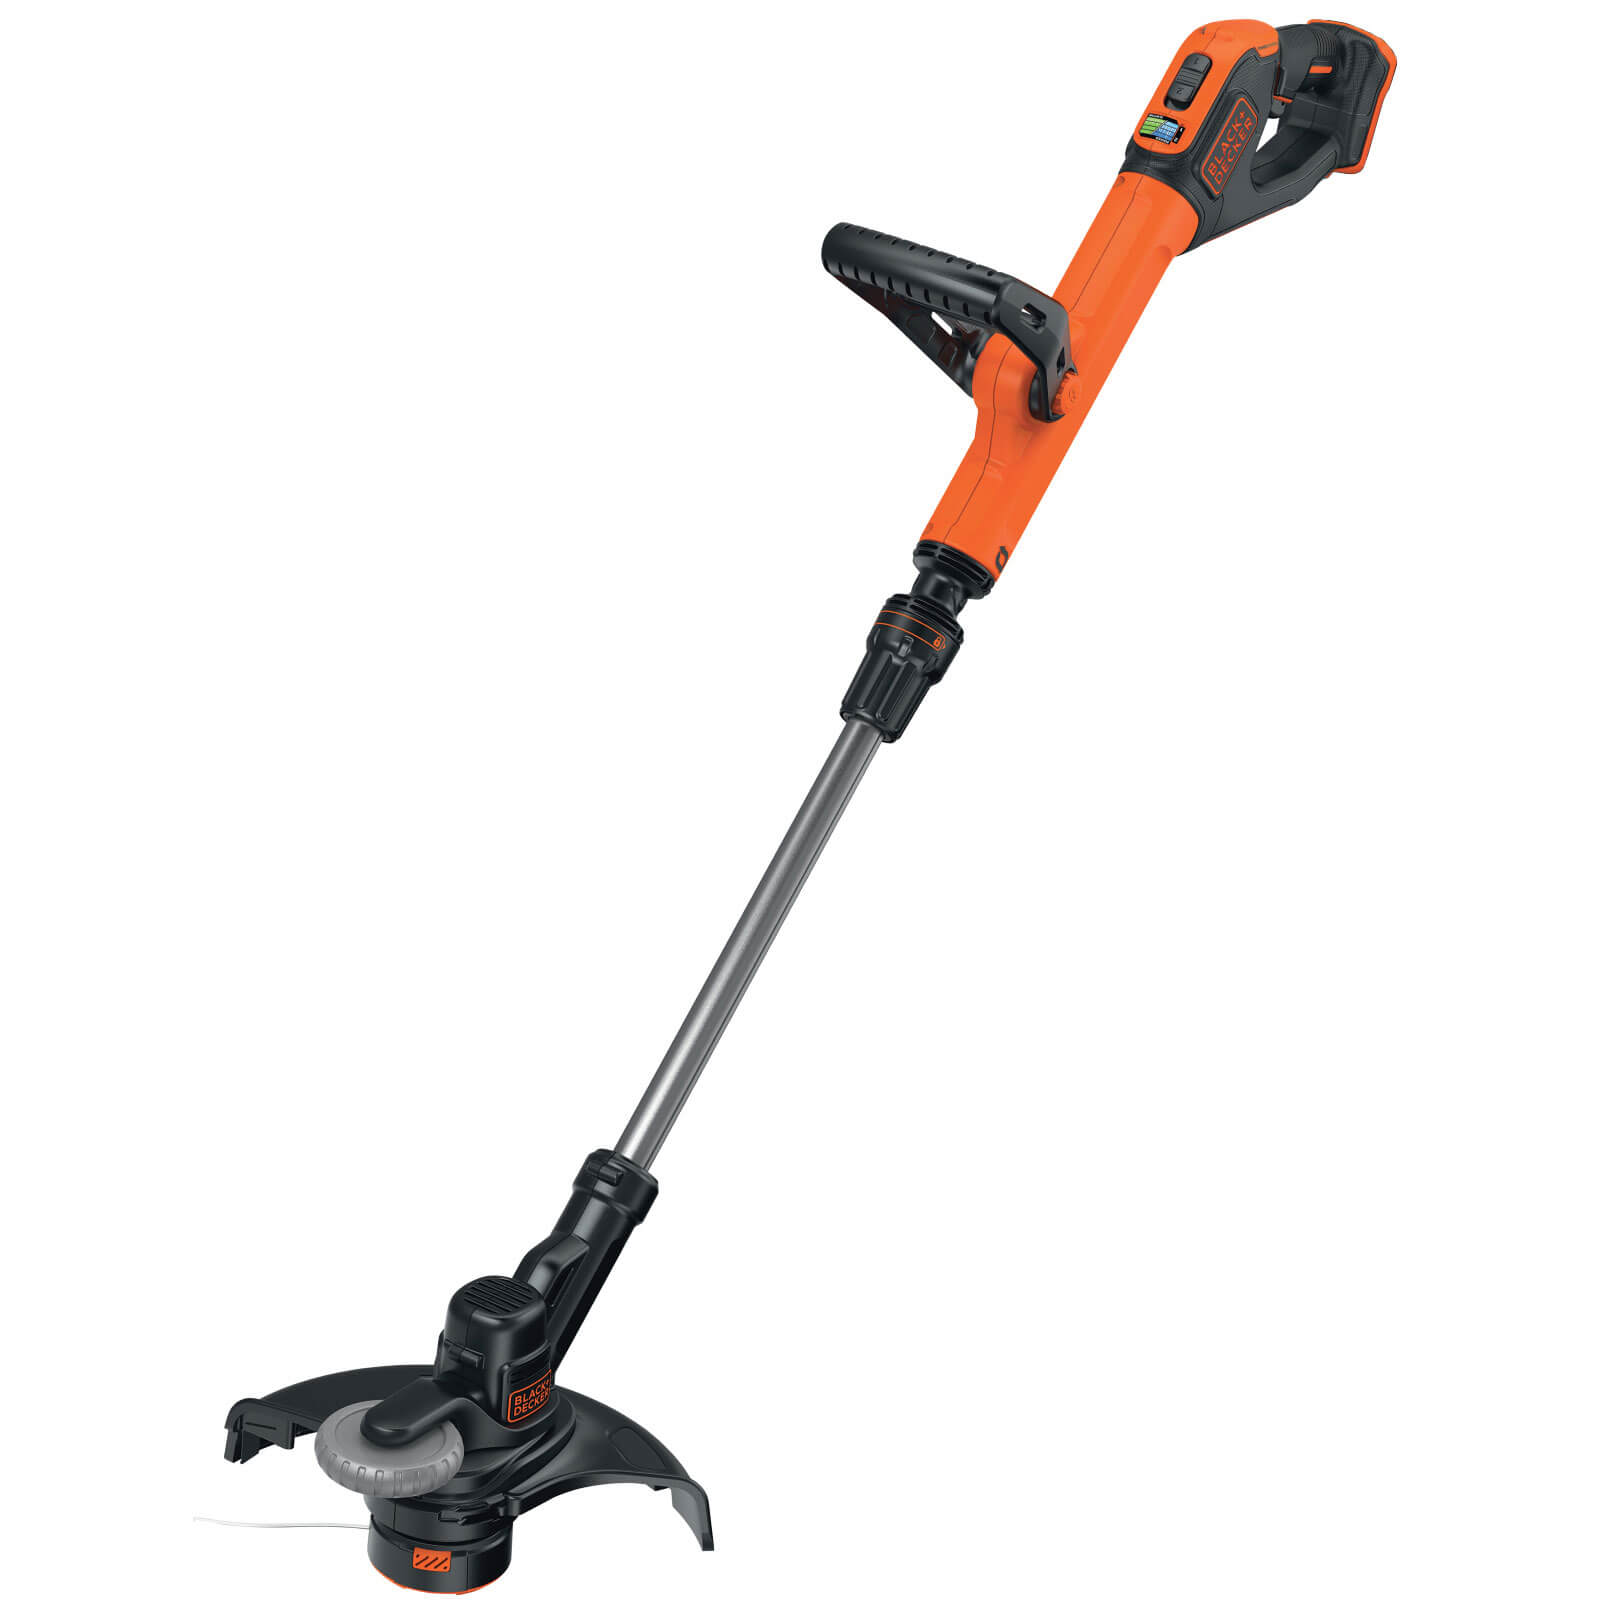 Black and Decker STC1820PC 18v Cordless Grass Trimmer 280mm No Batteries No Charger